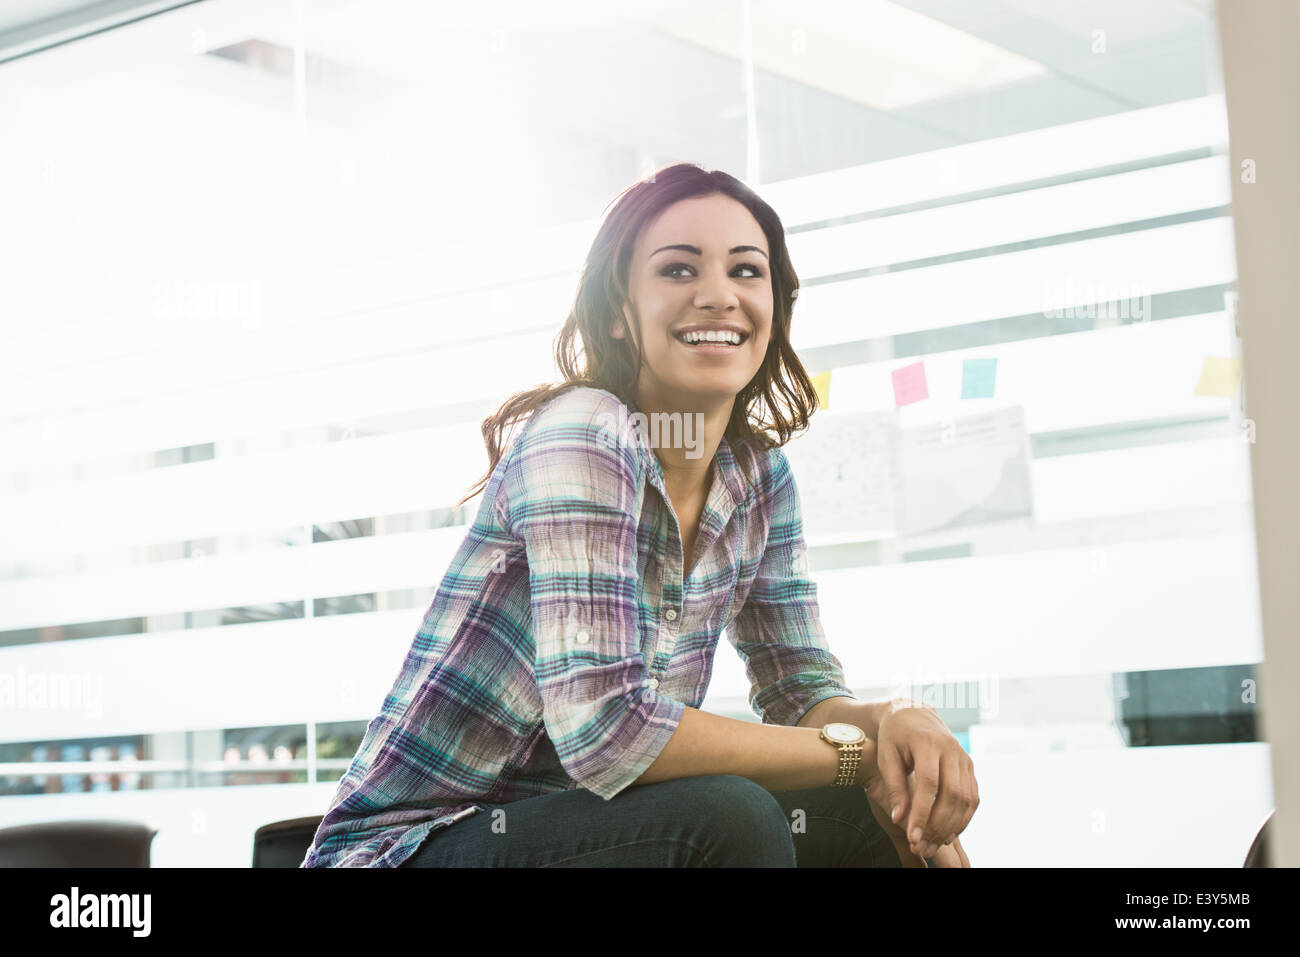 Portrait of young businesswoman in office Photo Stock